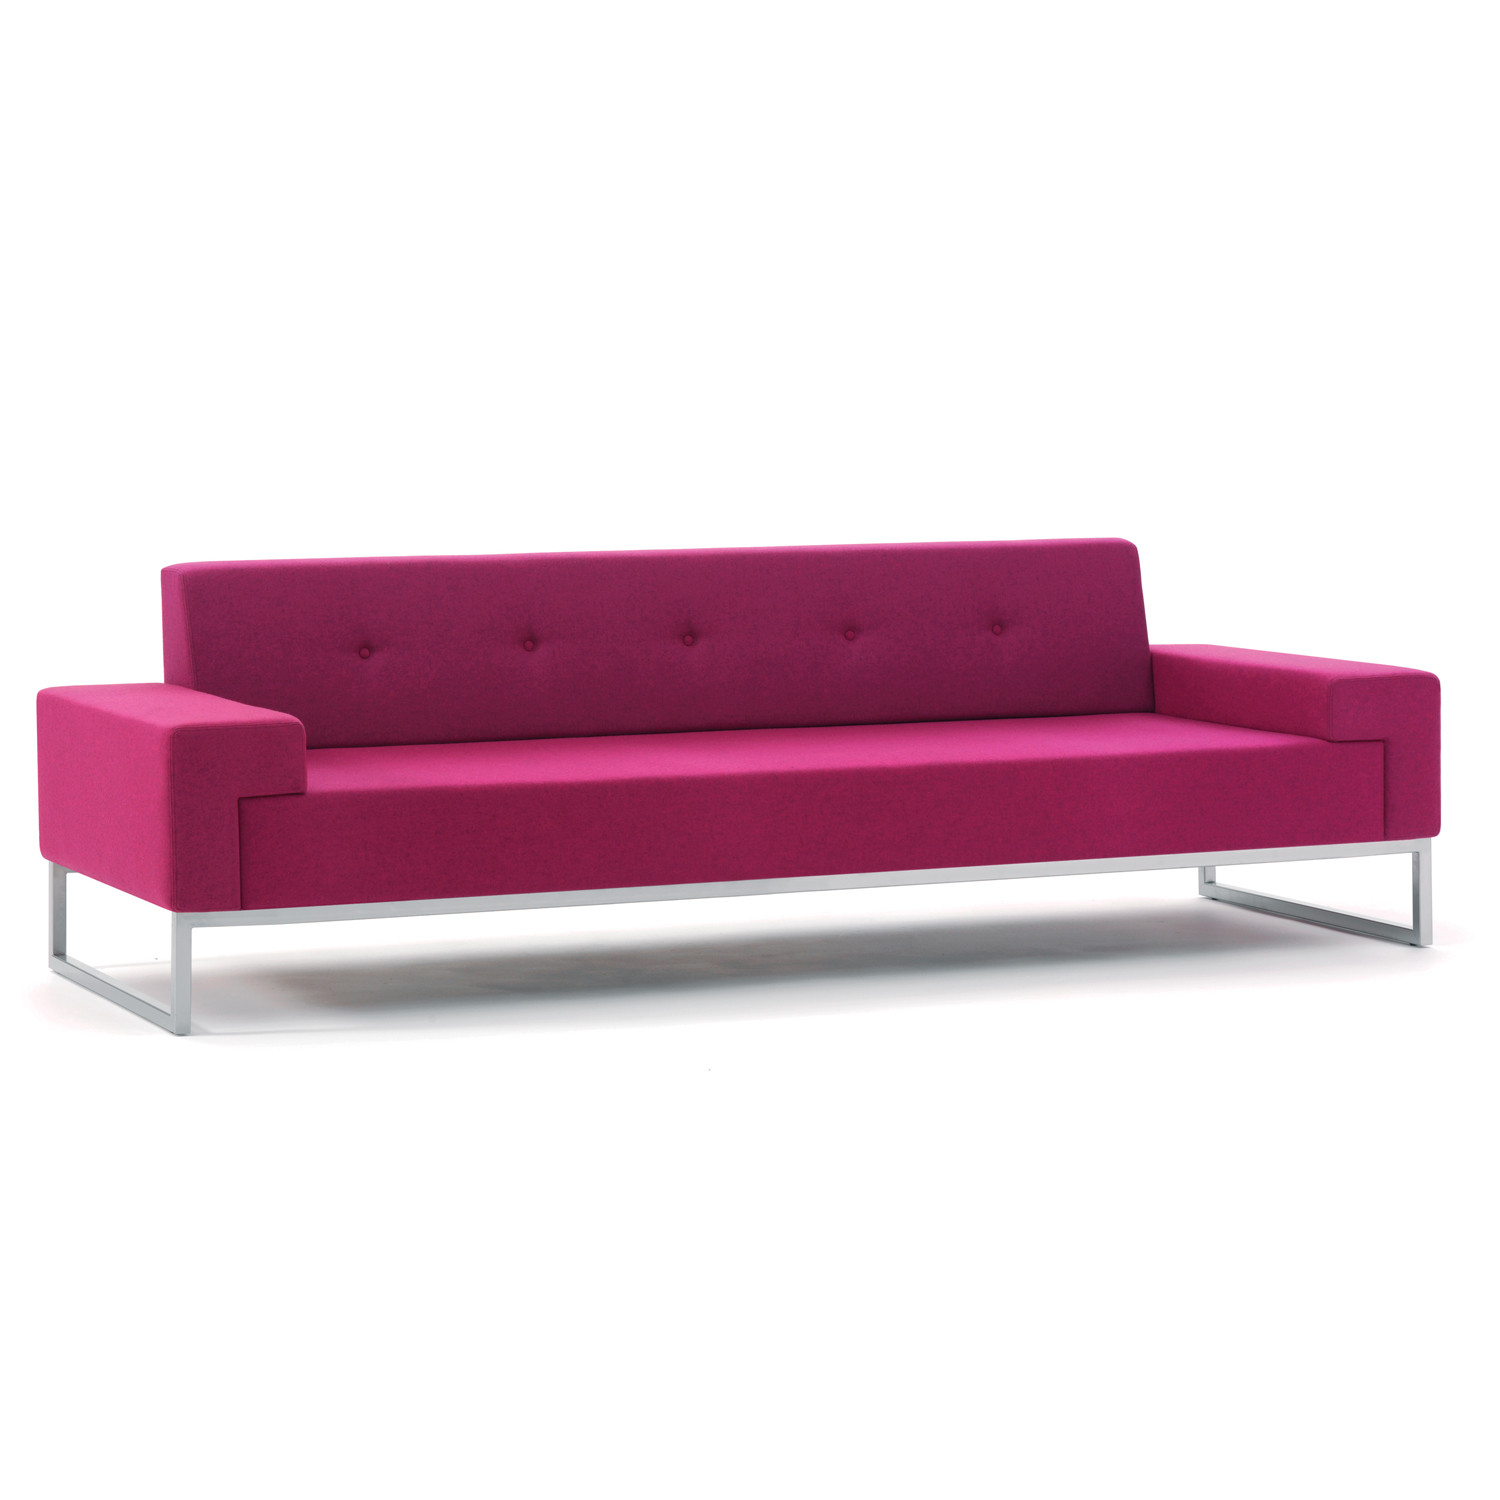 Hub Soft Reception Seating